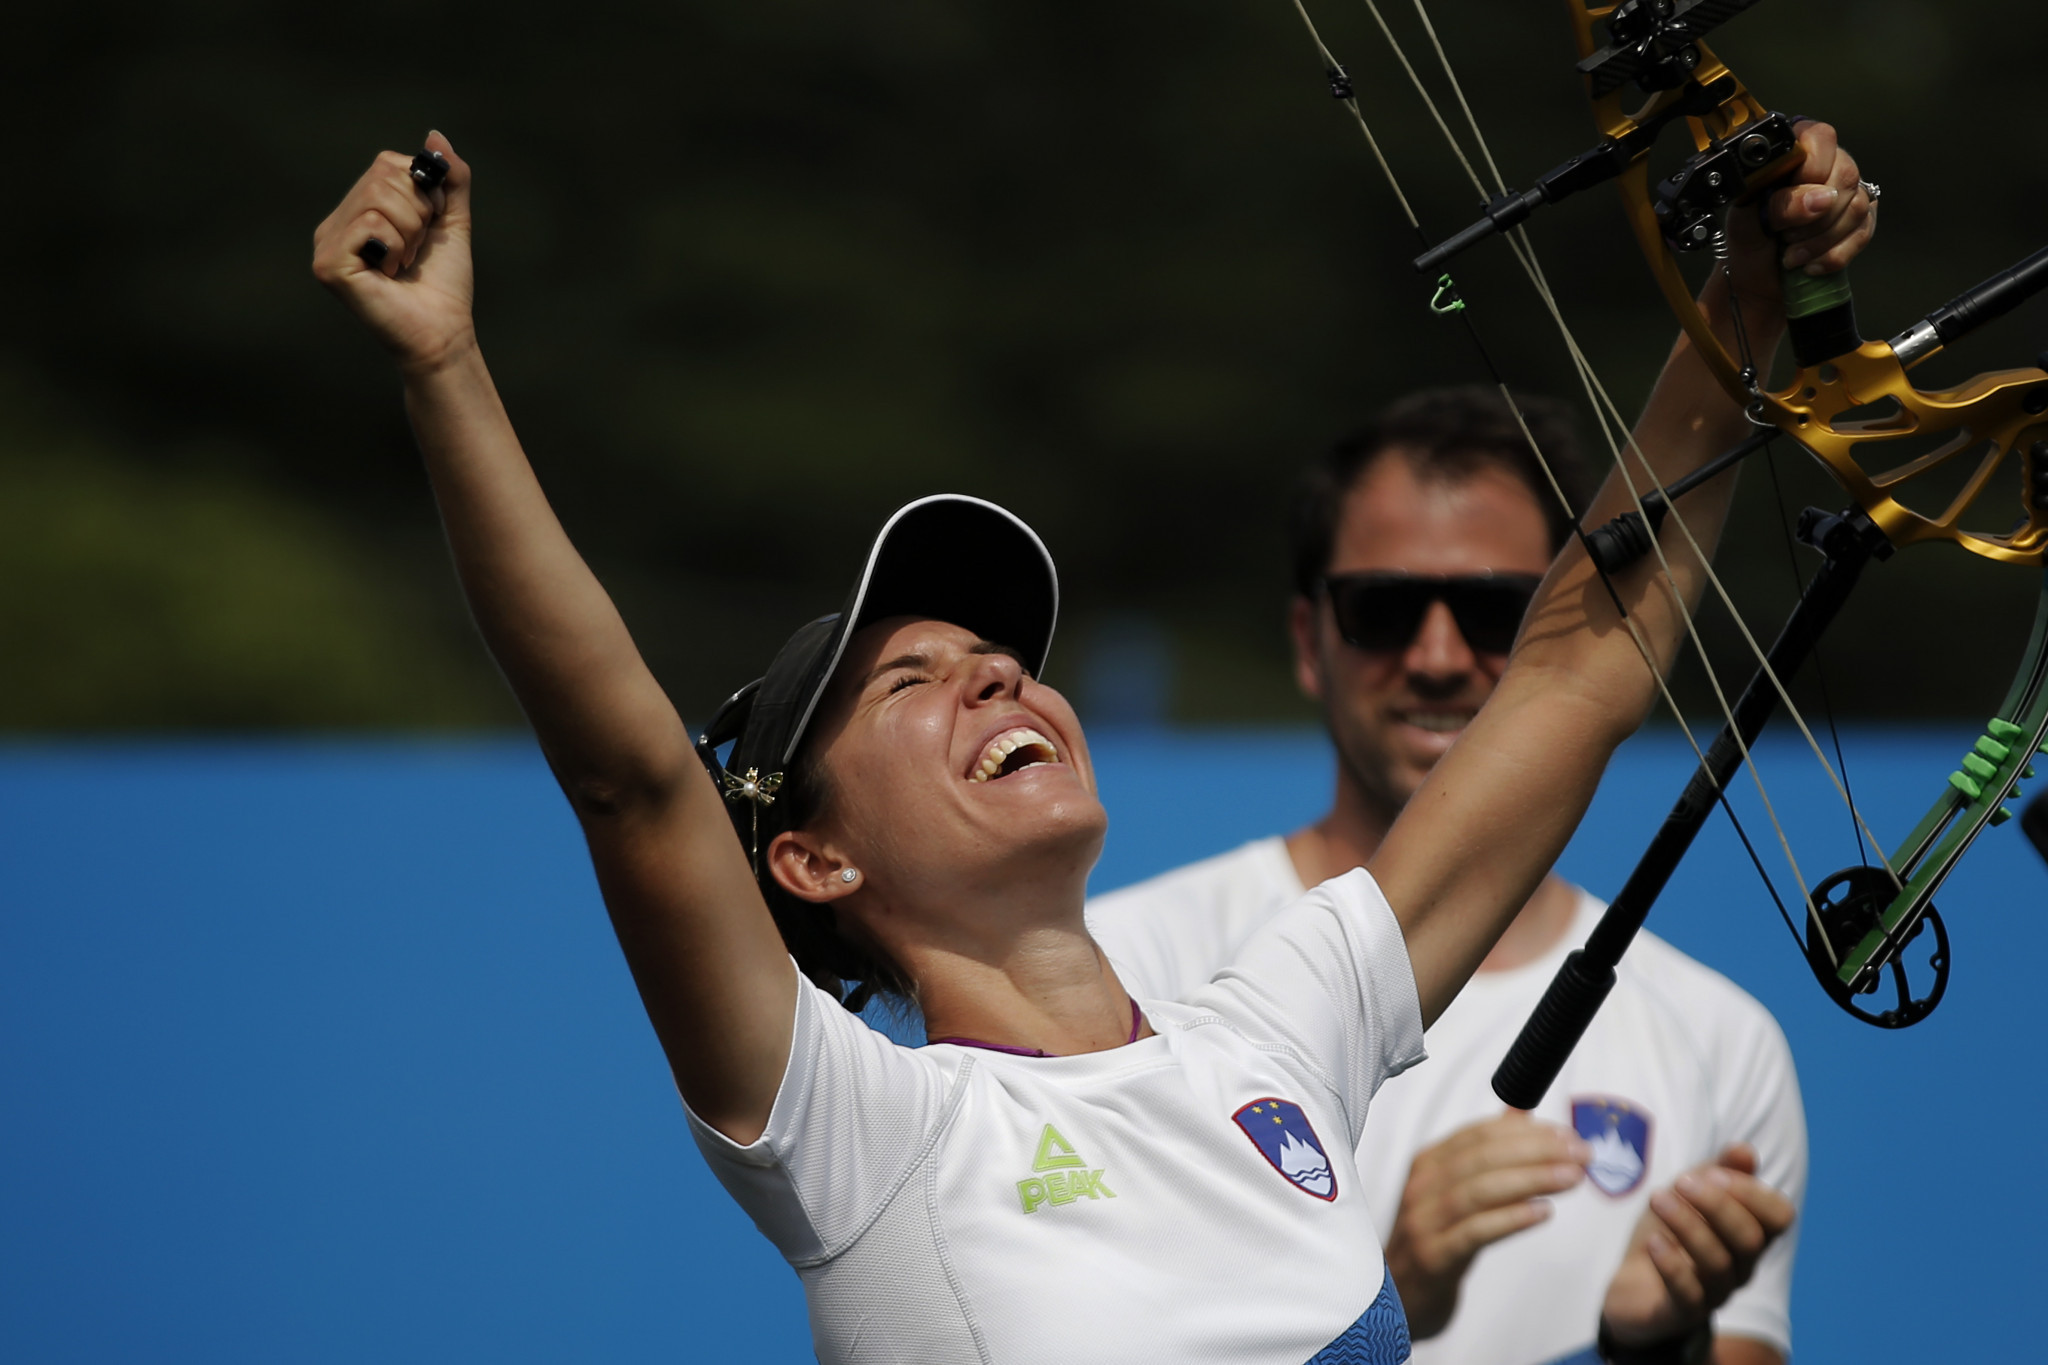 Slovenia's Toja Ellison celebrates European Games victory in Minsk in the women's recurve ©Getty Images